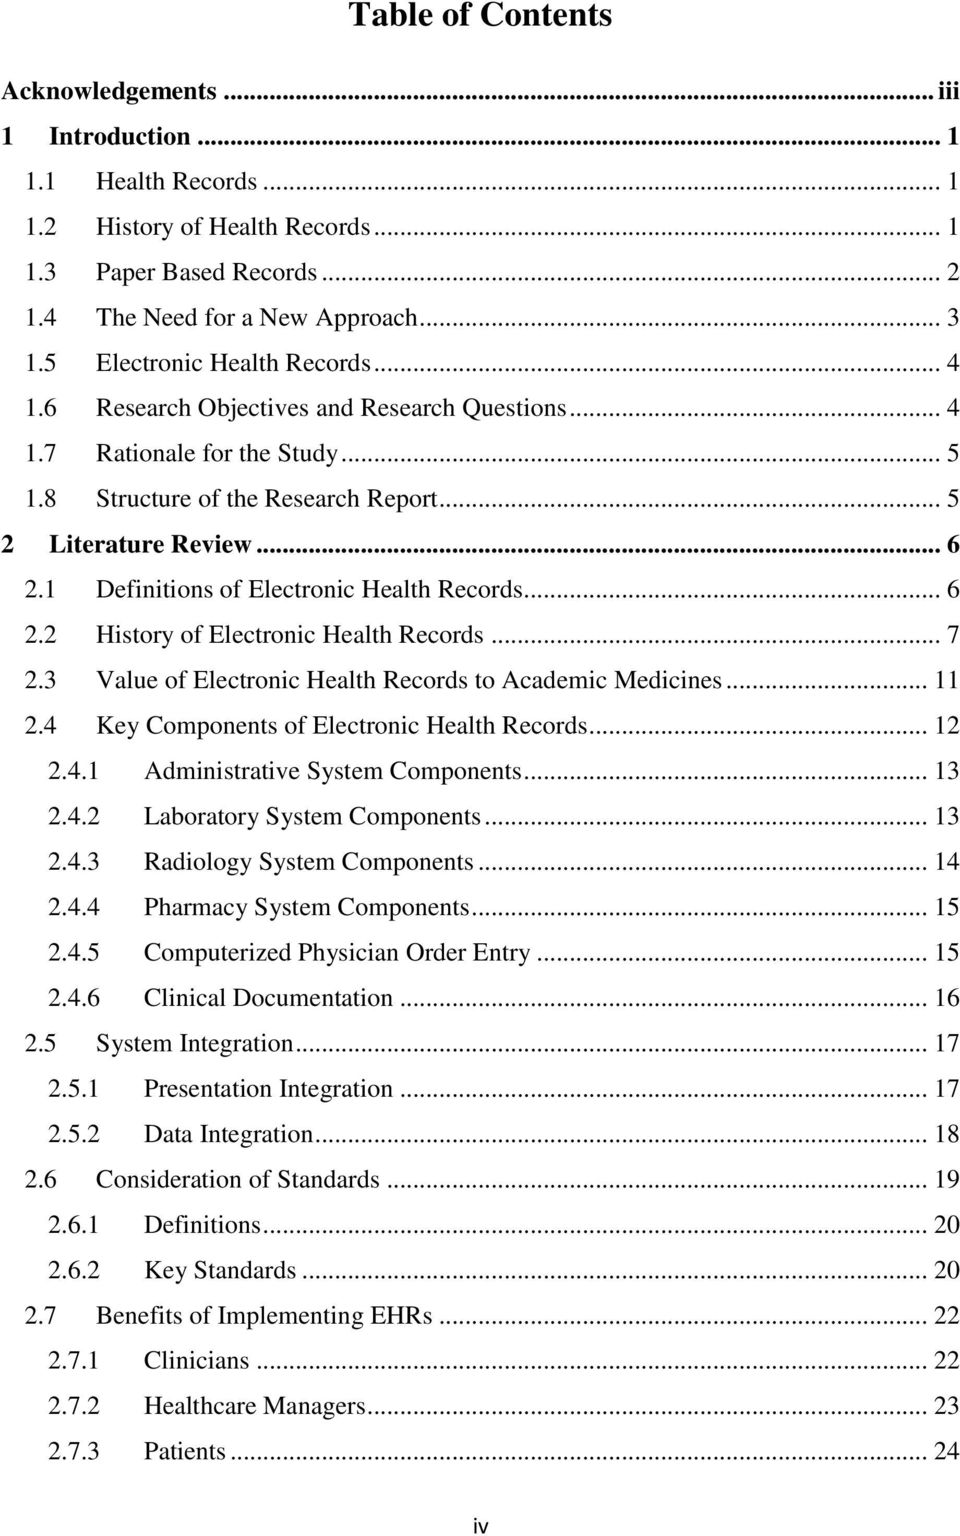 1 Definitions of Electronic Health Records... 6 2.2 History of Electronic Health Records... 7 2.3 Value of Electronic Health Records to Academic Medicines... 11 2.